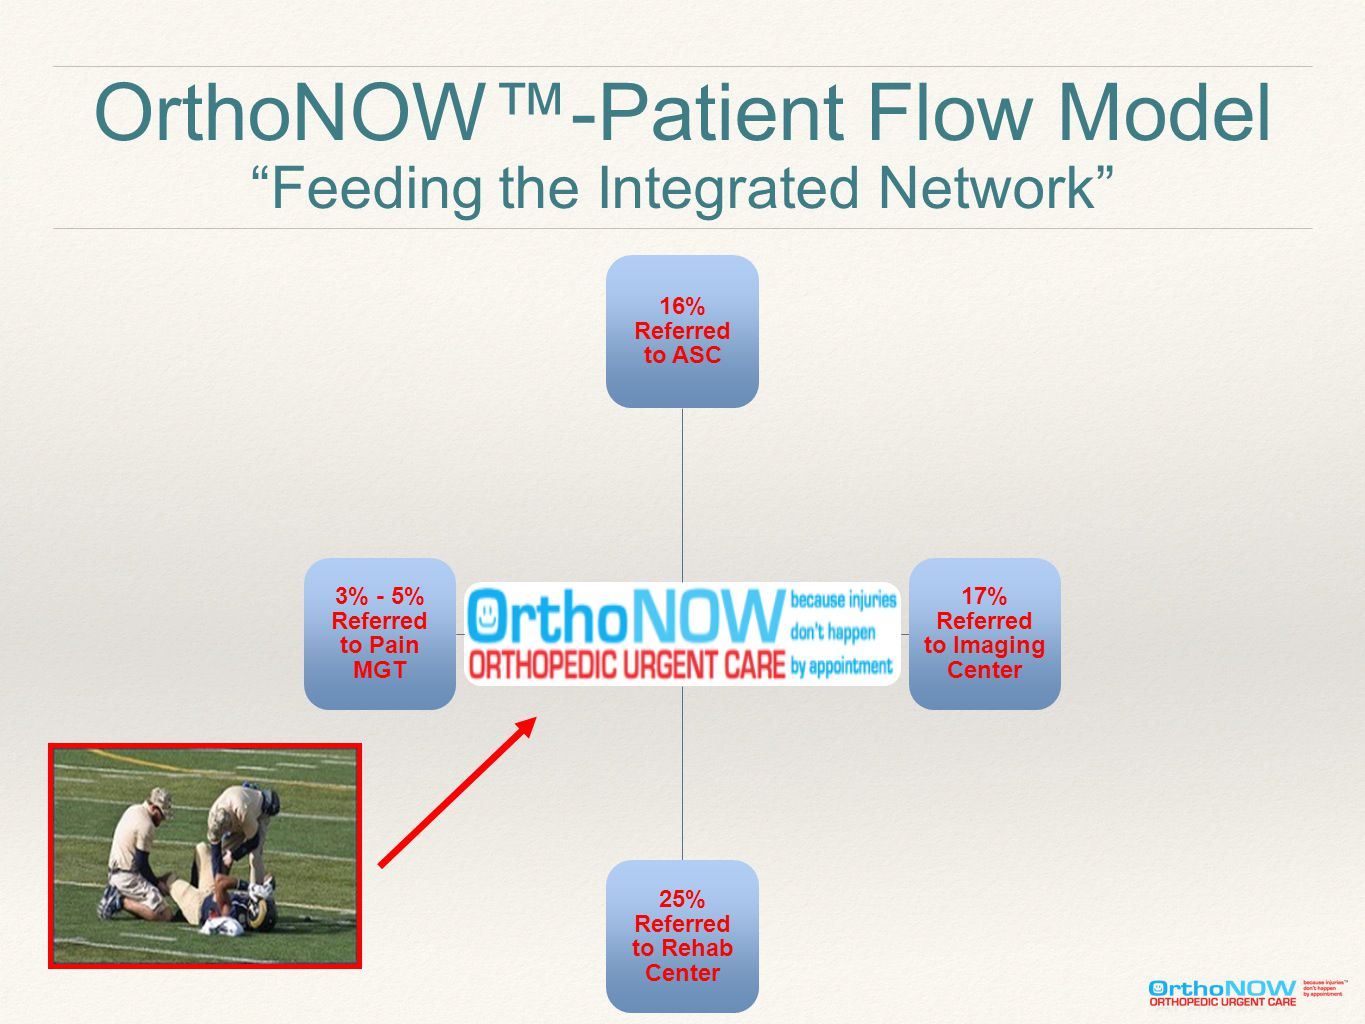 OrthoNOW™-Patient Flow Model Feeding the Integrated Network